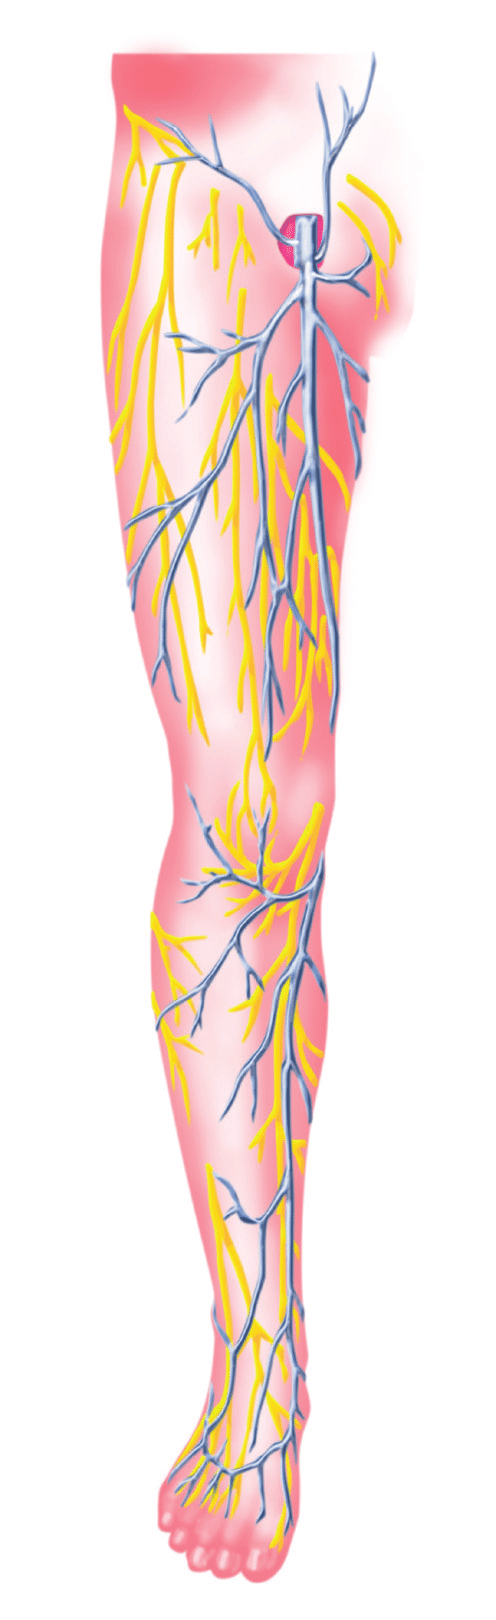 hight resolution of 1 superficial veins of the lower extremity